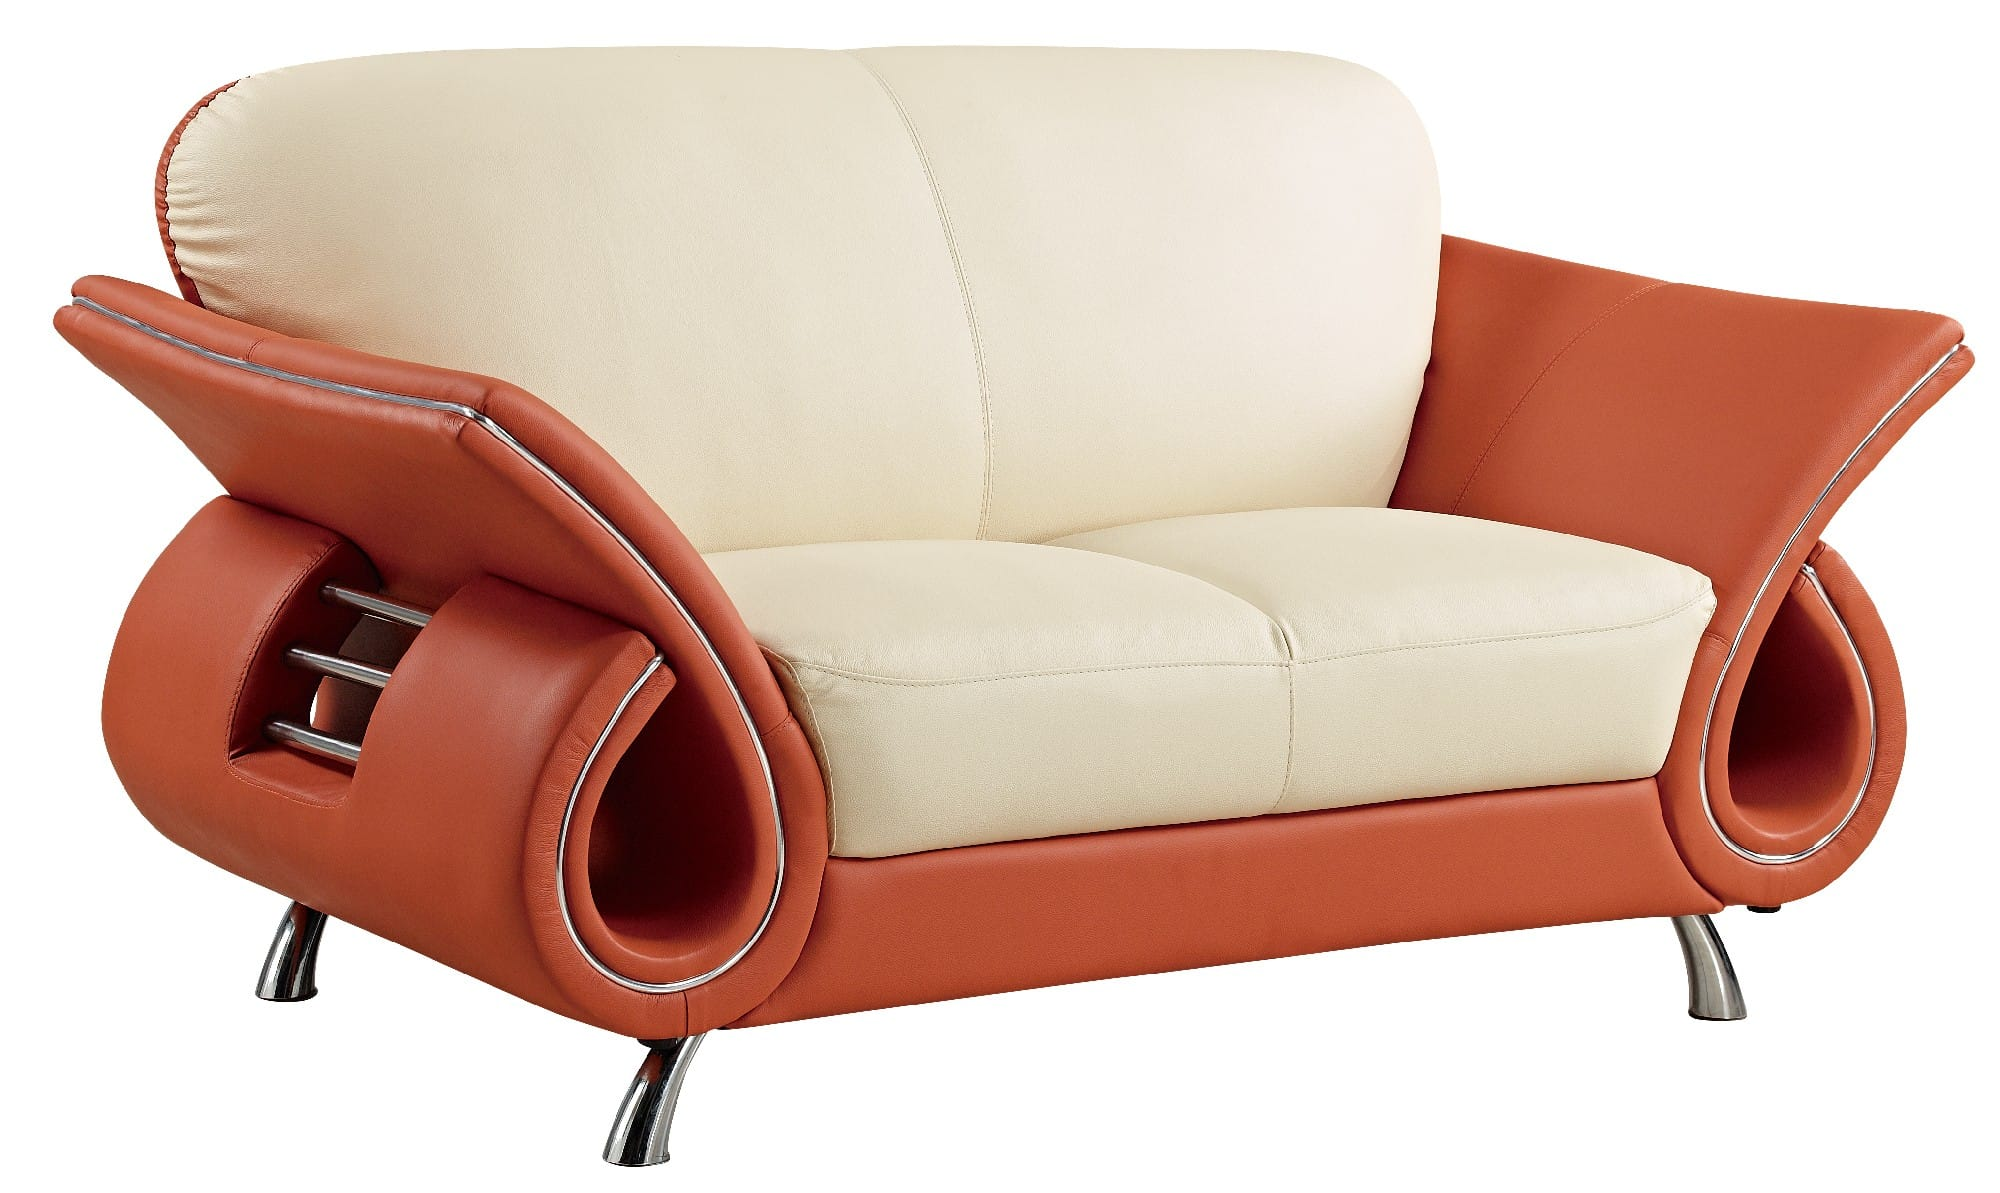 lucas beige orange leather sofa set microfiber versus sofas u559 loveseat by global furniture